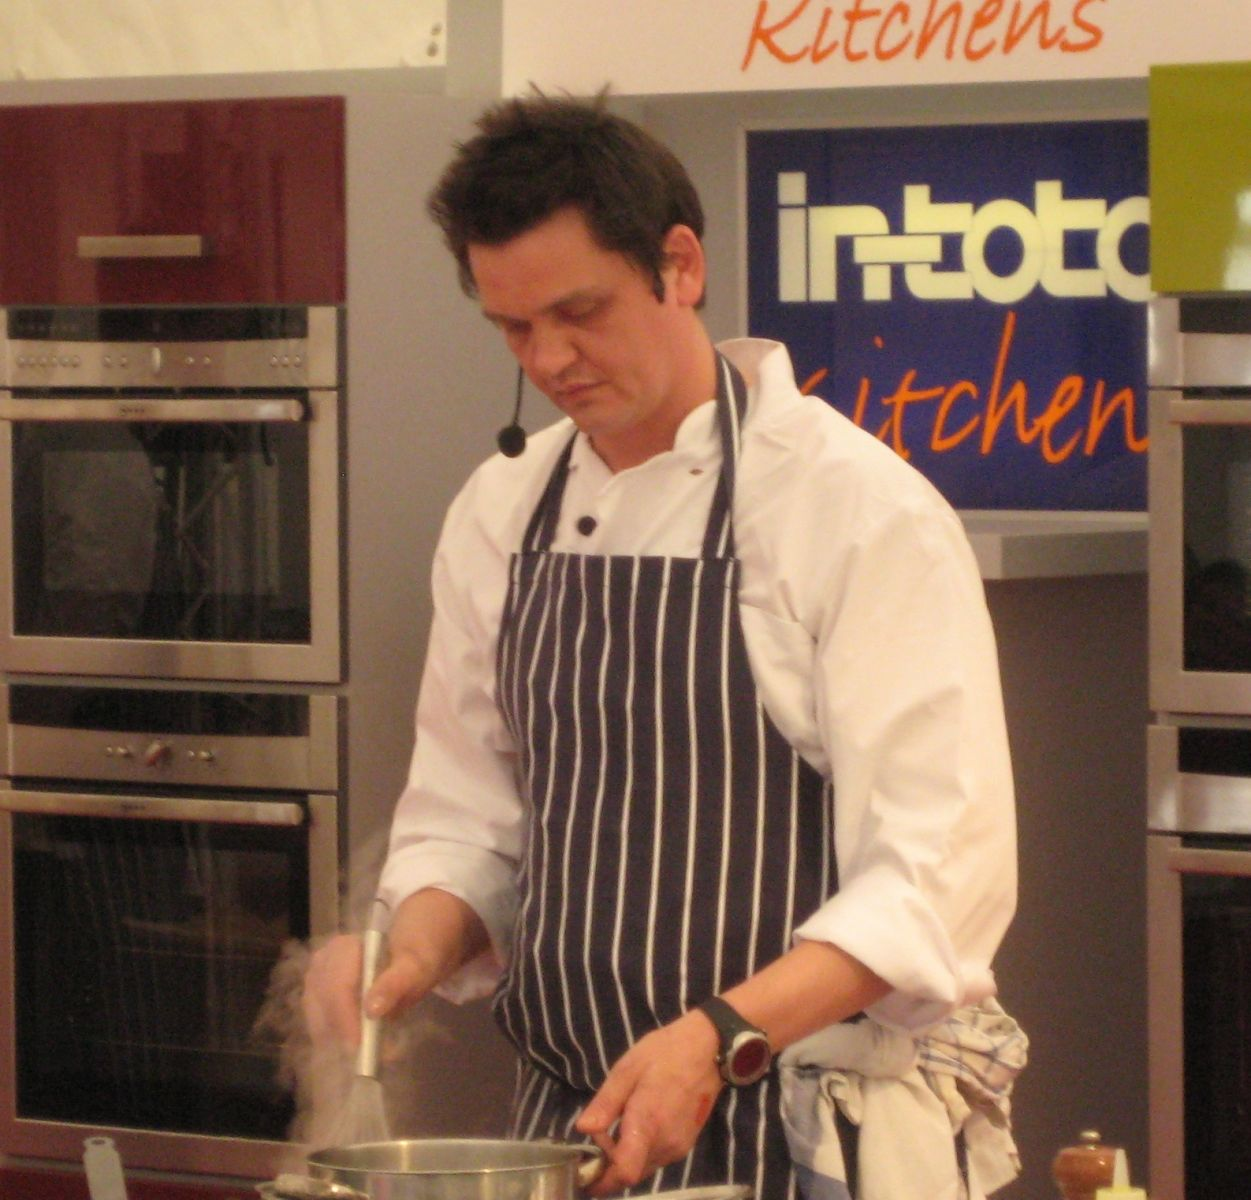 James at the South West Food Festival cookery theatre